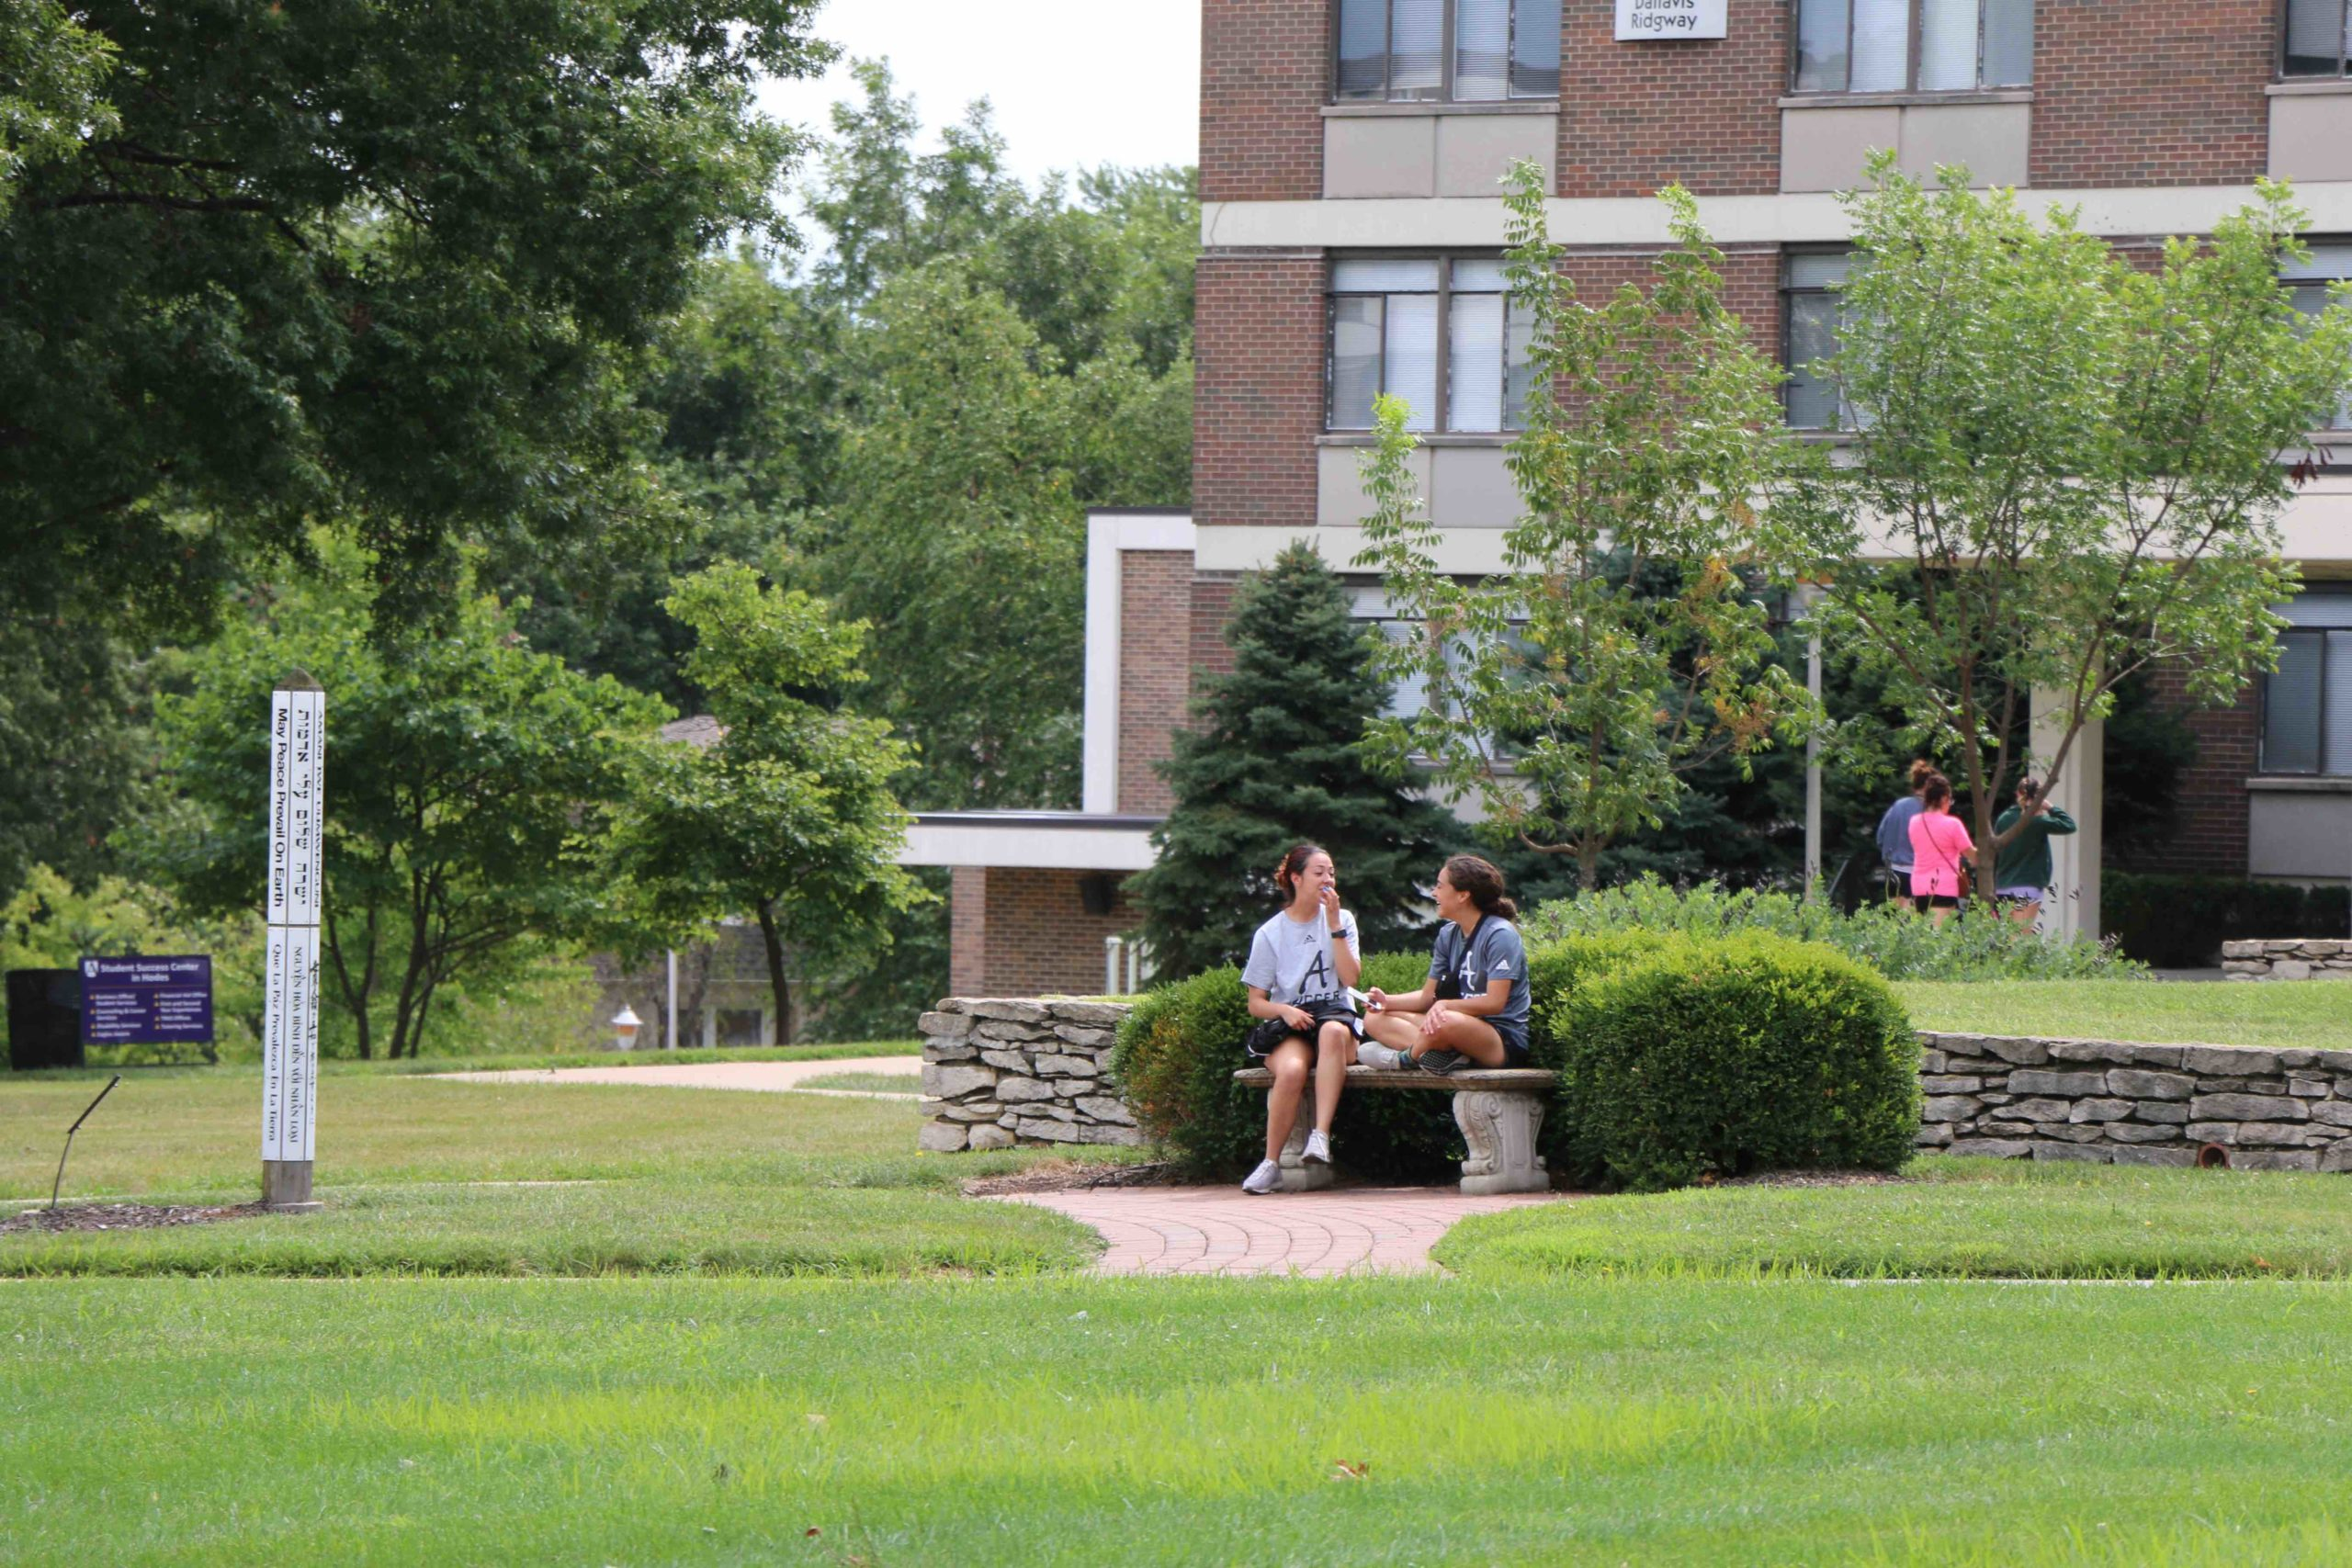 Two students sitting and talking on a bench in front of Foyle Hall